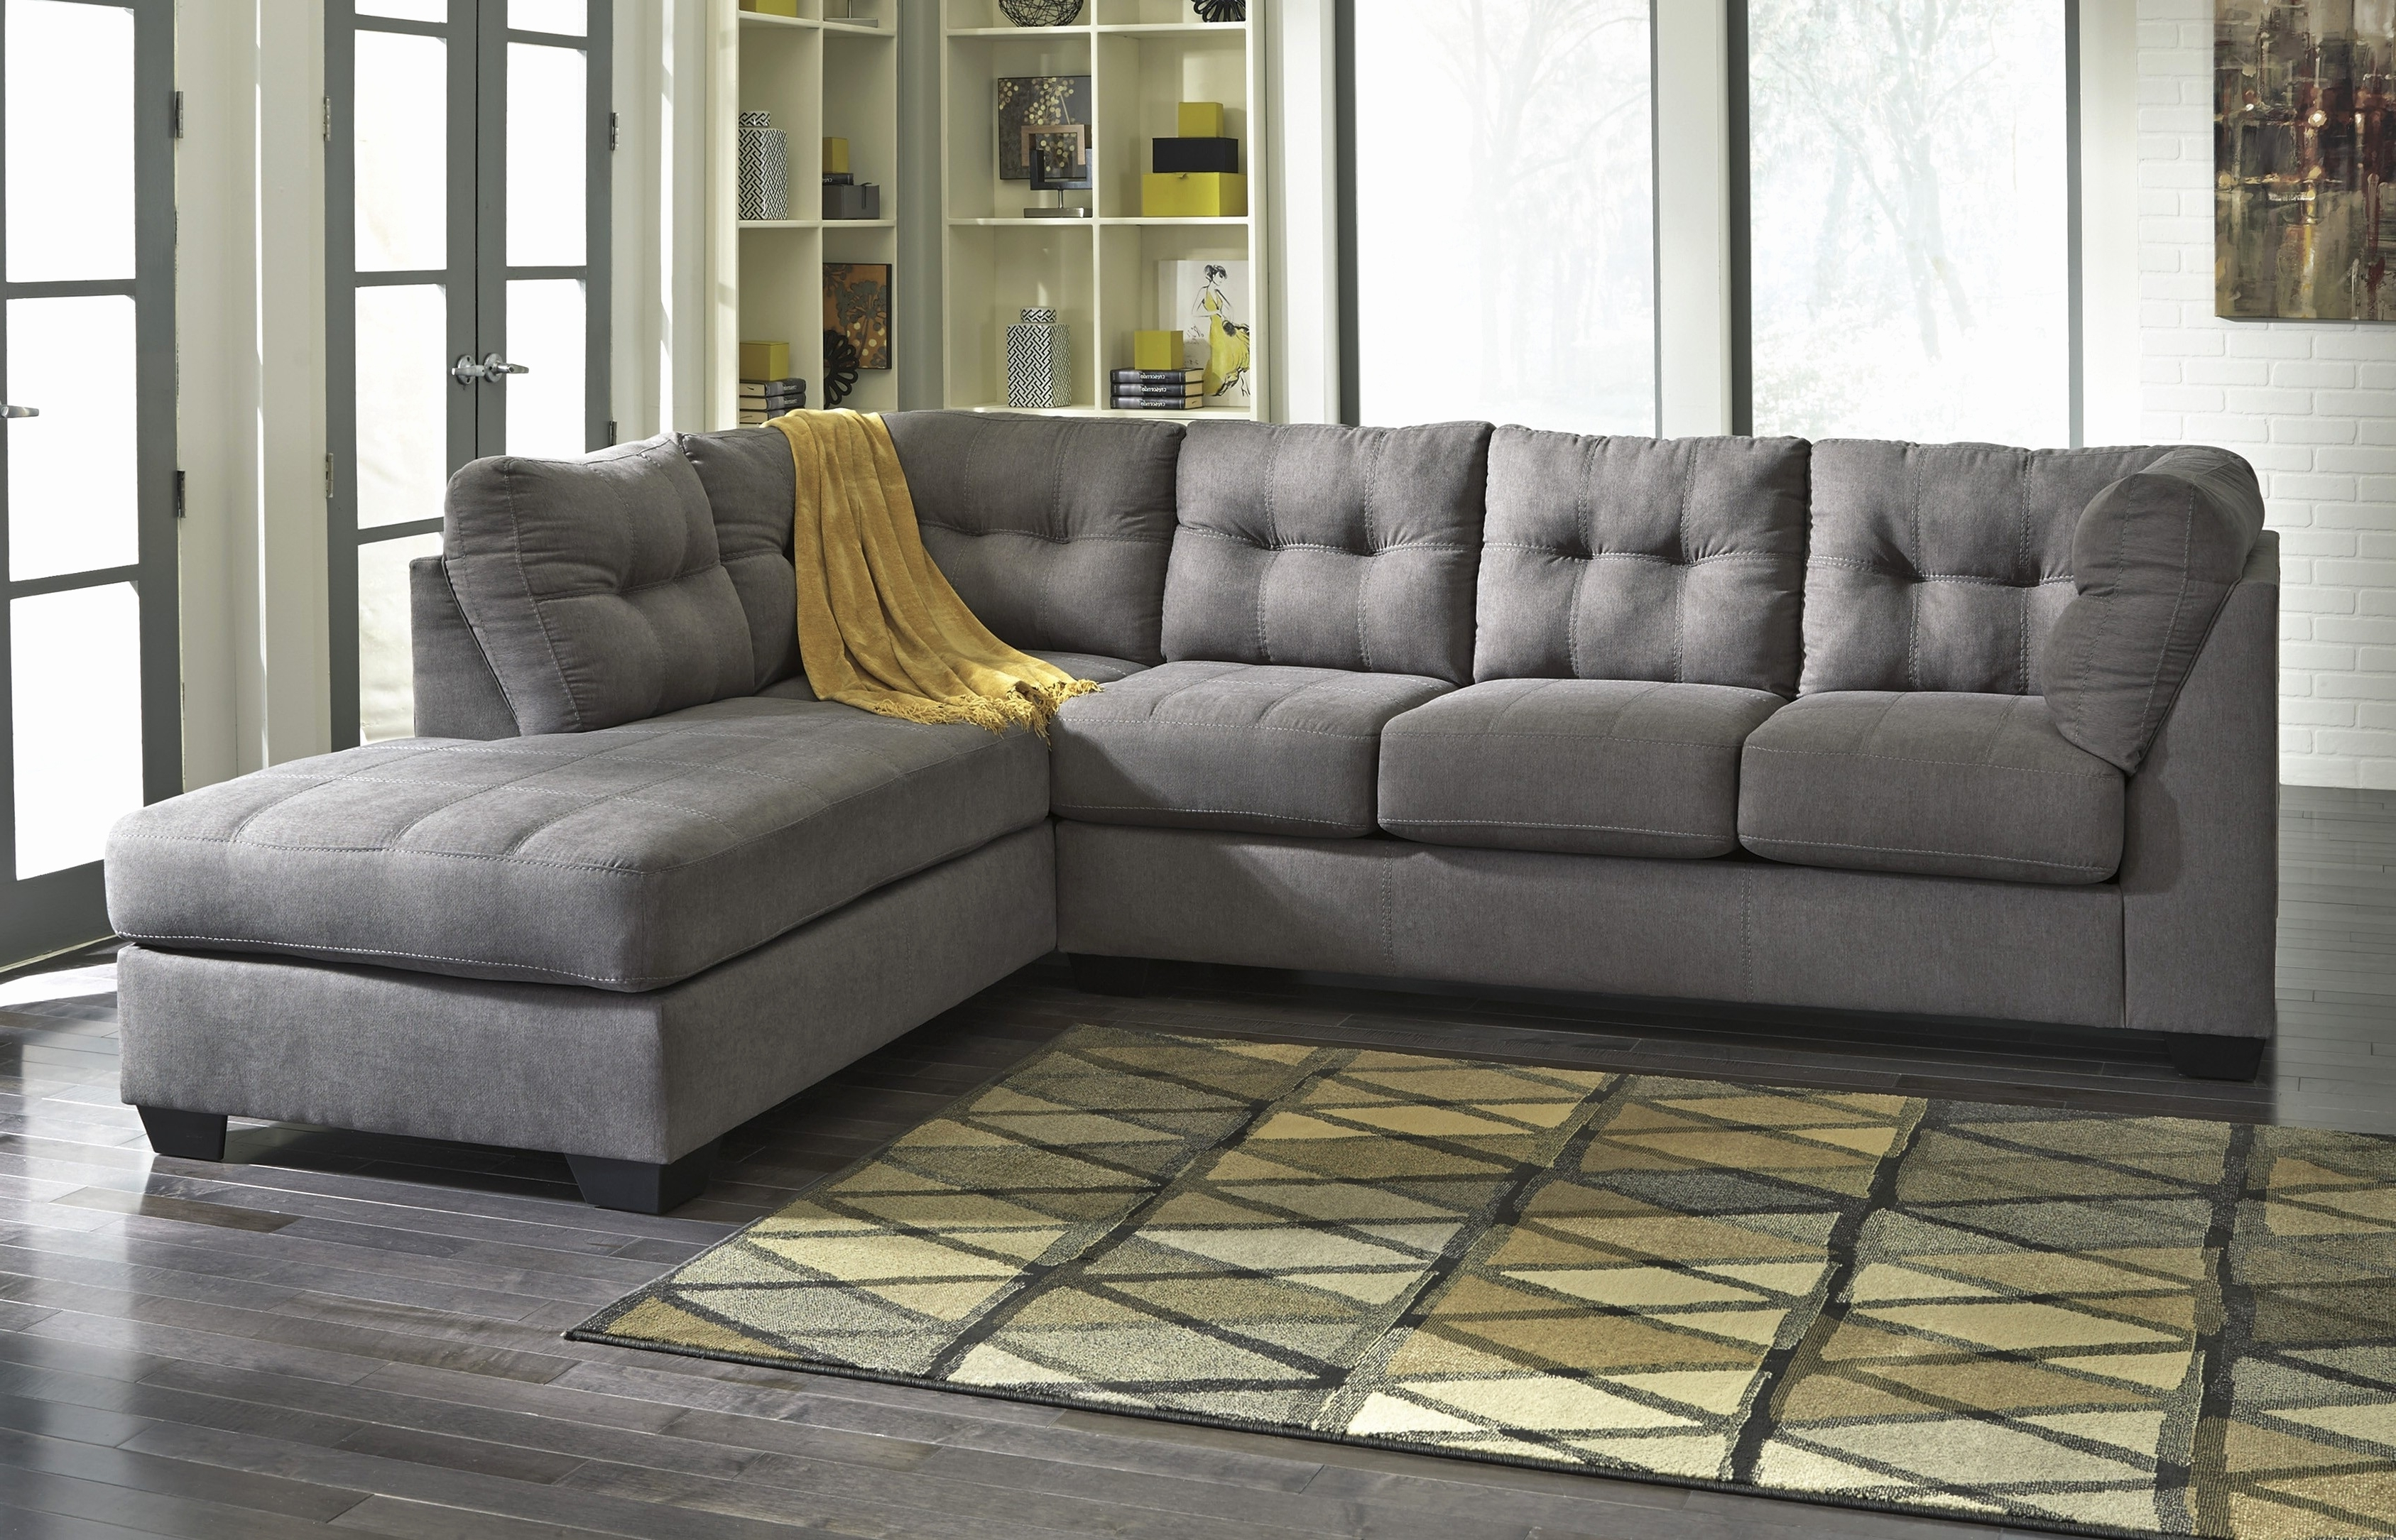 Sectional Sofas At Ashley Furniture Pertaining To Well Known Unique Sectional Sleeper Sofa Ashley 2018 – Couches And Sofas Ideas (View 16 of 20)